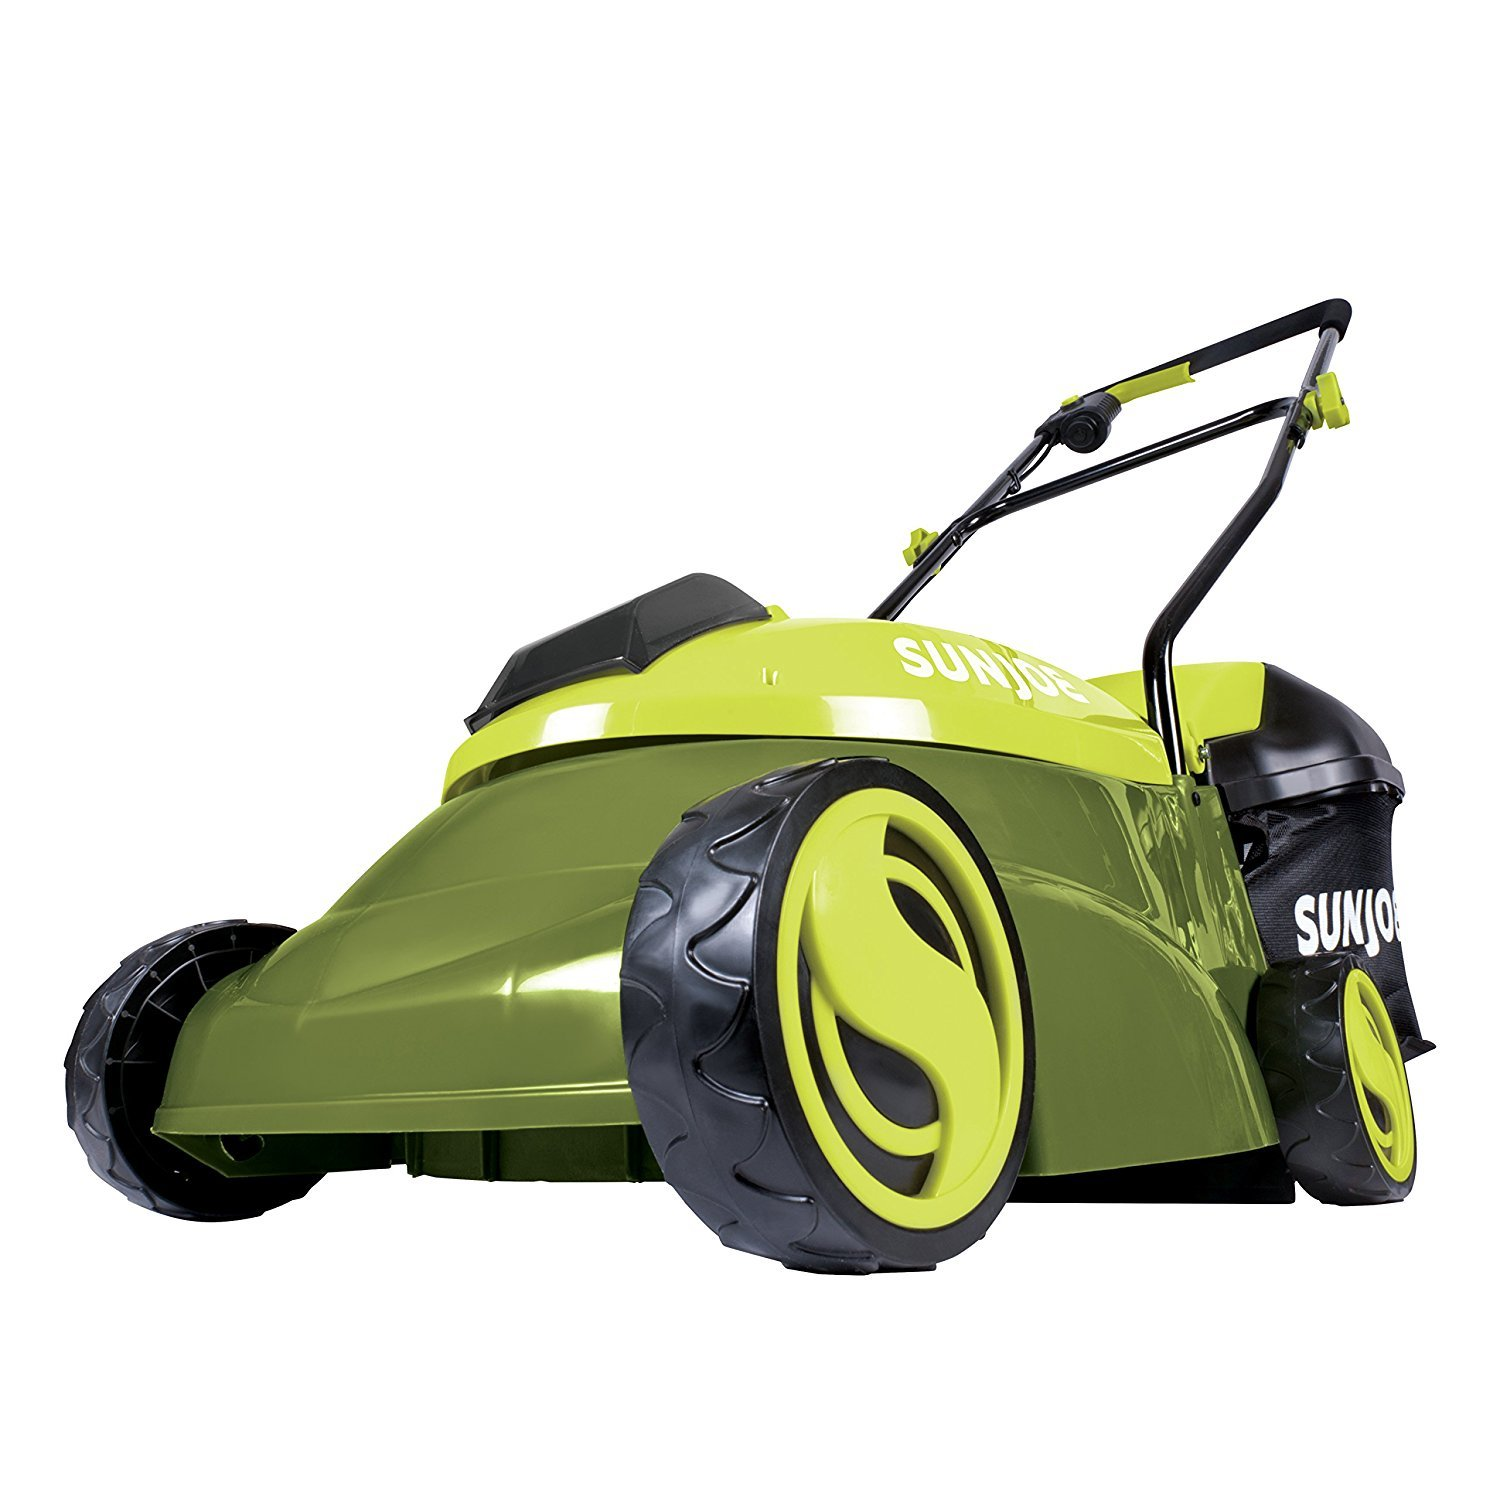 Cordless Electric Lawn Mower Home Furniture Design